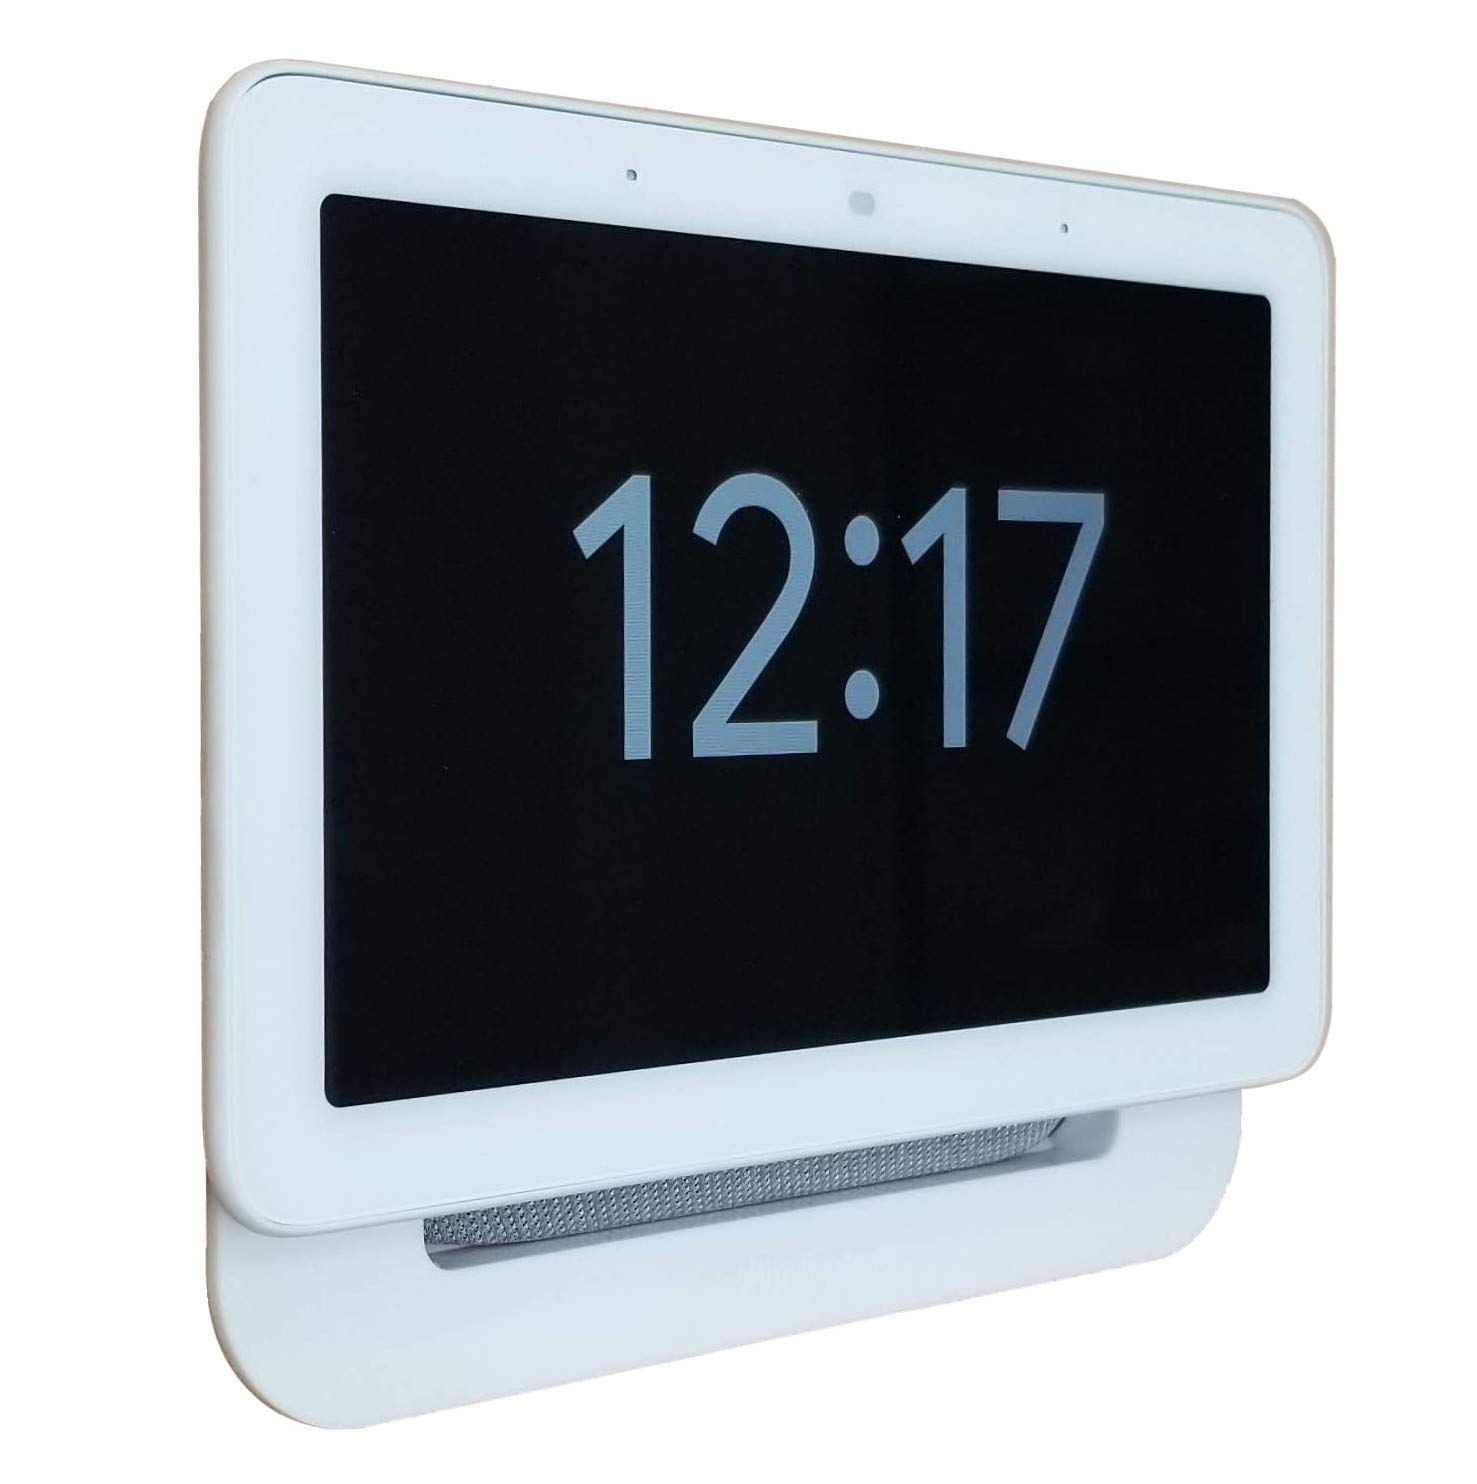 Mount Genie Simple Built-in Google Nest Hub Wall Mount: The Perfect Smart Home Command Center | PoE Option Available | Designed in The USA